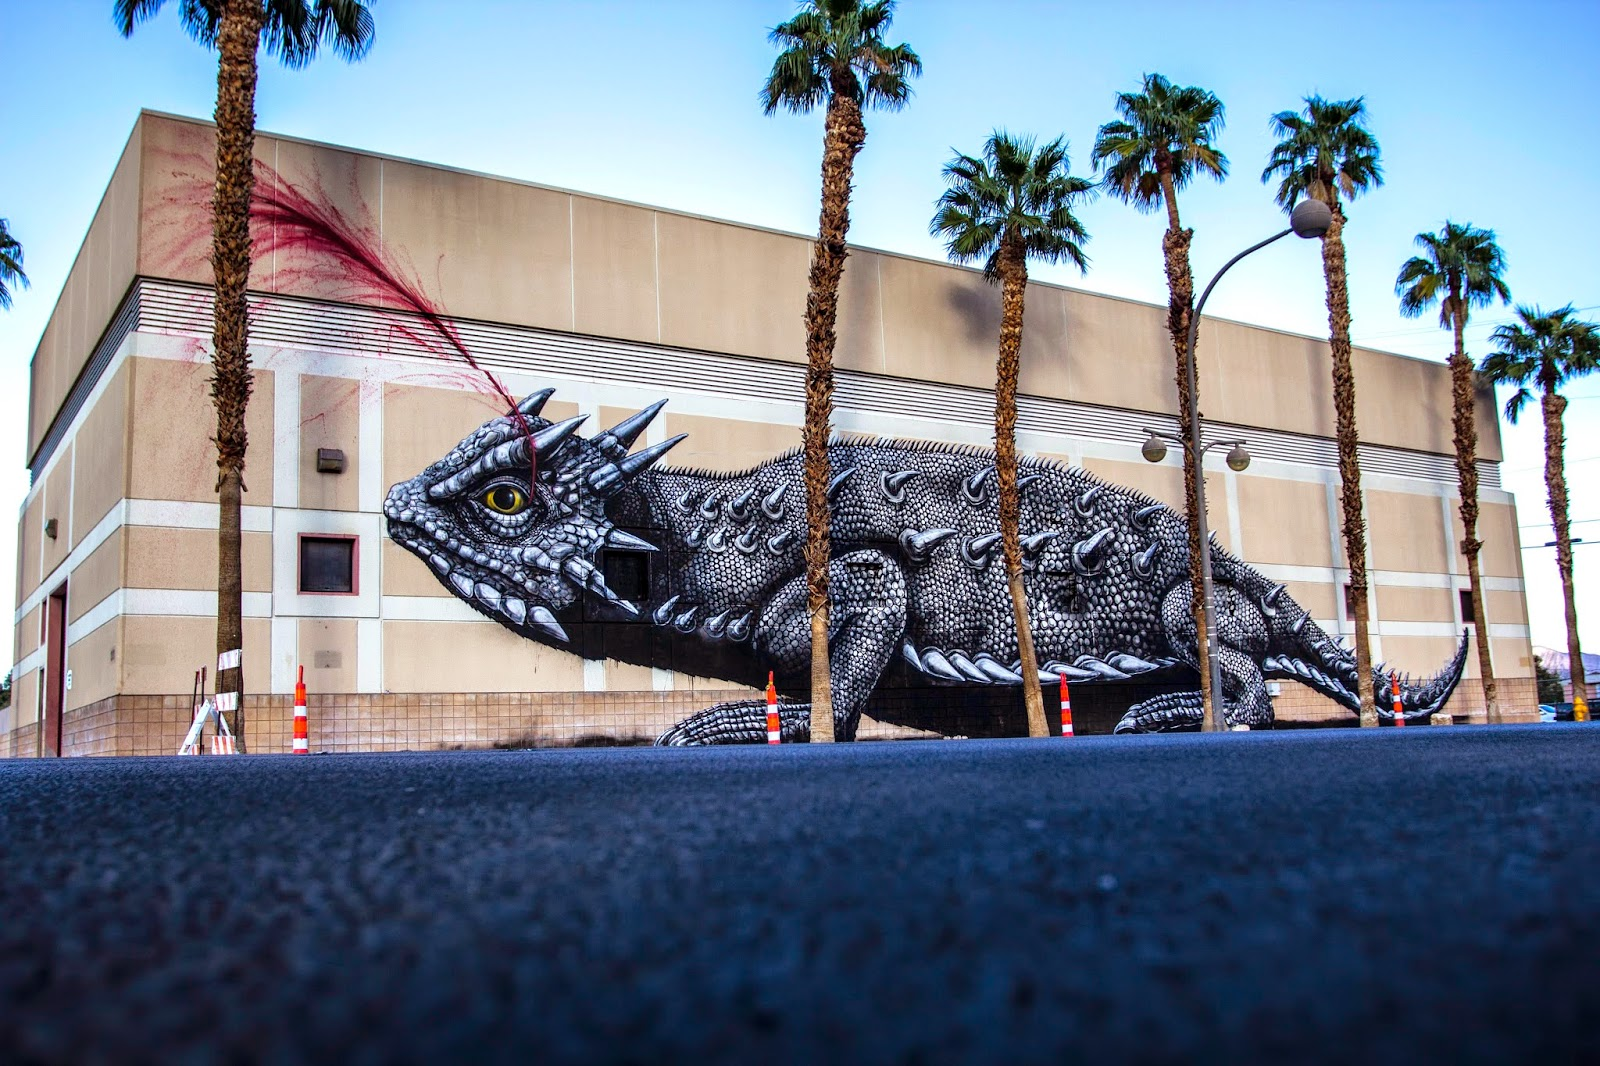 Late last night, our friend ROA wrapped up his newest mural on the streets of Downtown Las Vegas for the upcoming Life Is Beautiful 2014 Festival.